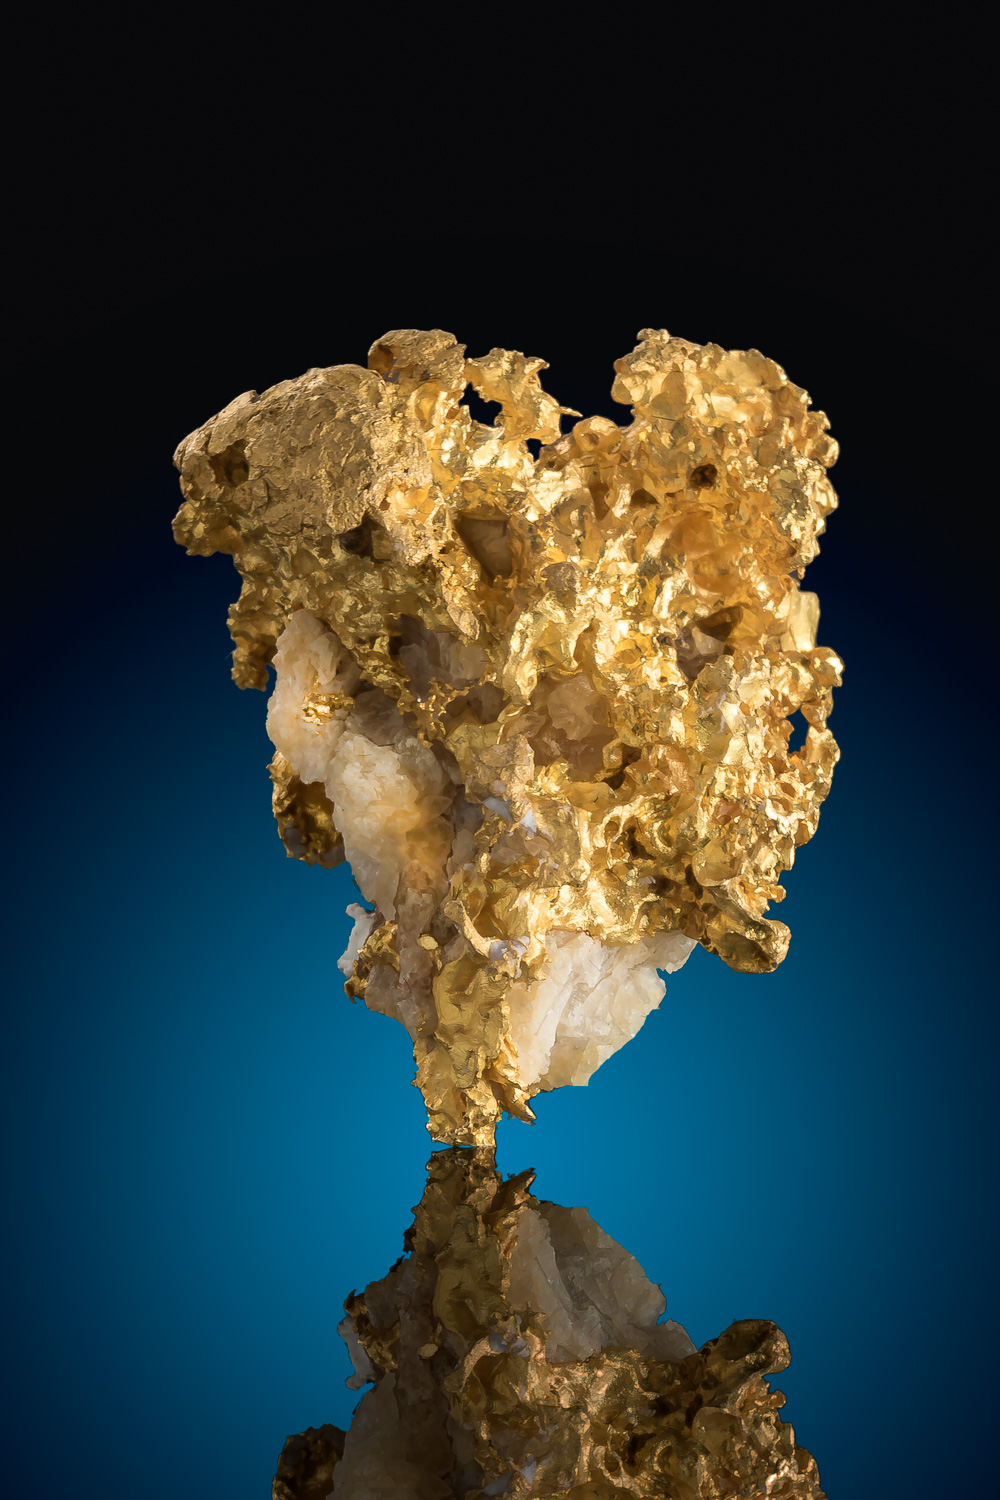 Brilliant - Brazil Gold and Quartz Specimen